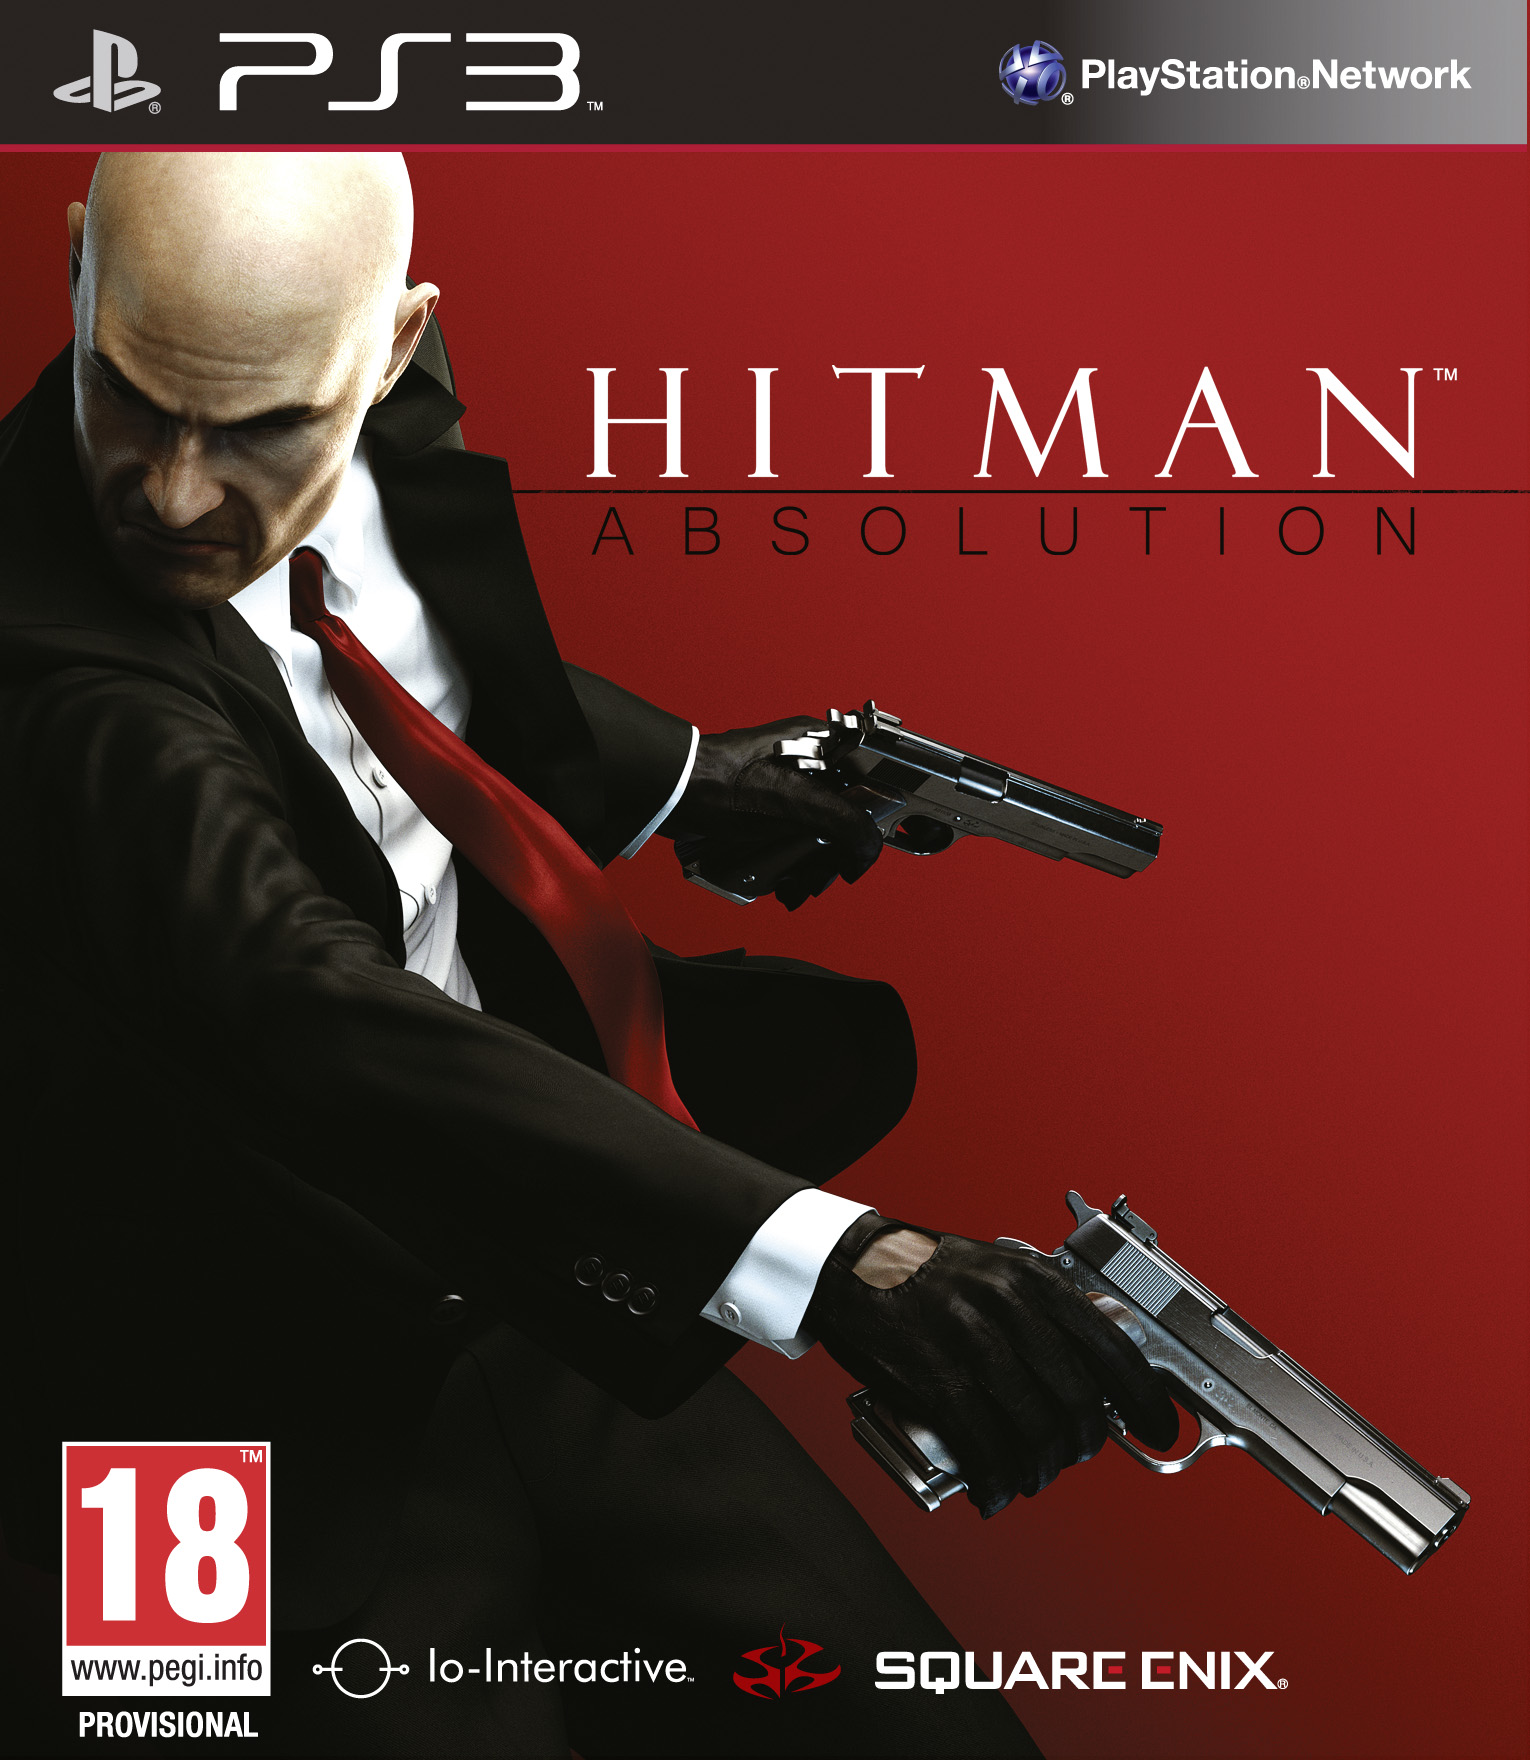 Hitman Absolution Fuse Box : Hitman absolution box art revealed egmnow